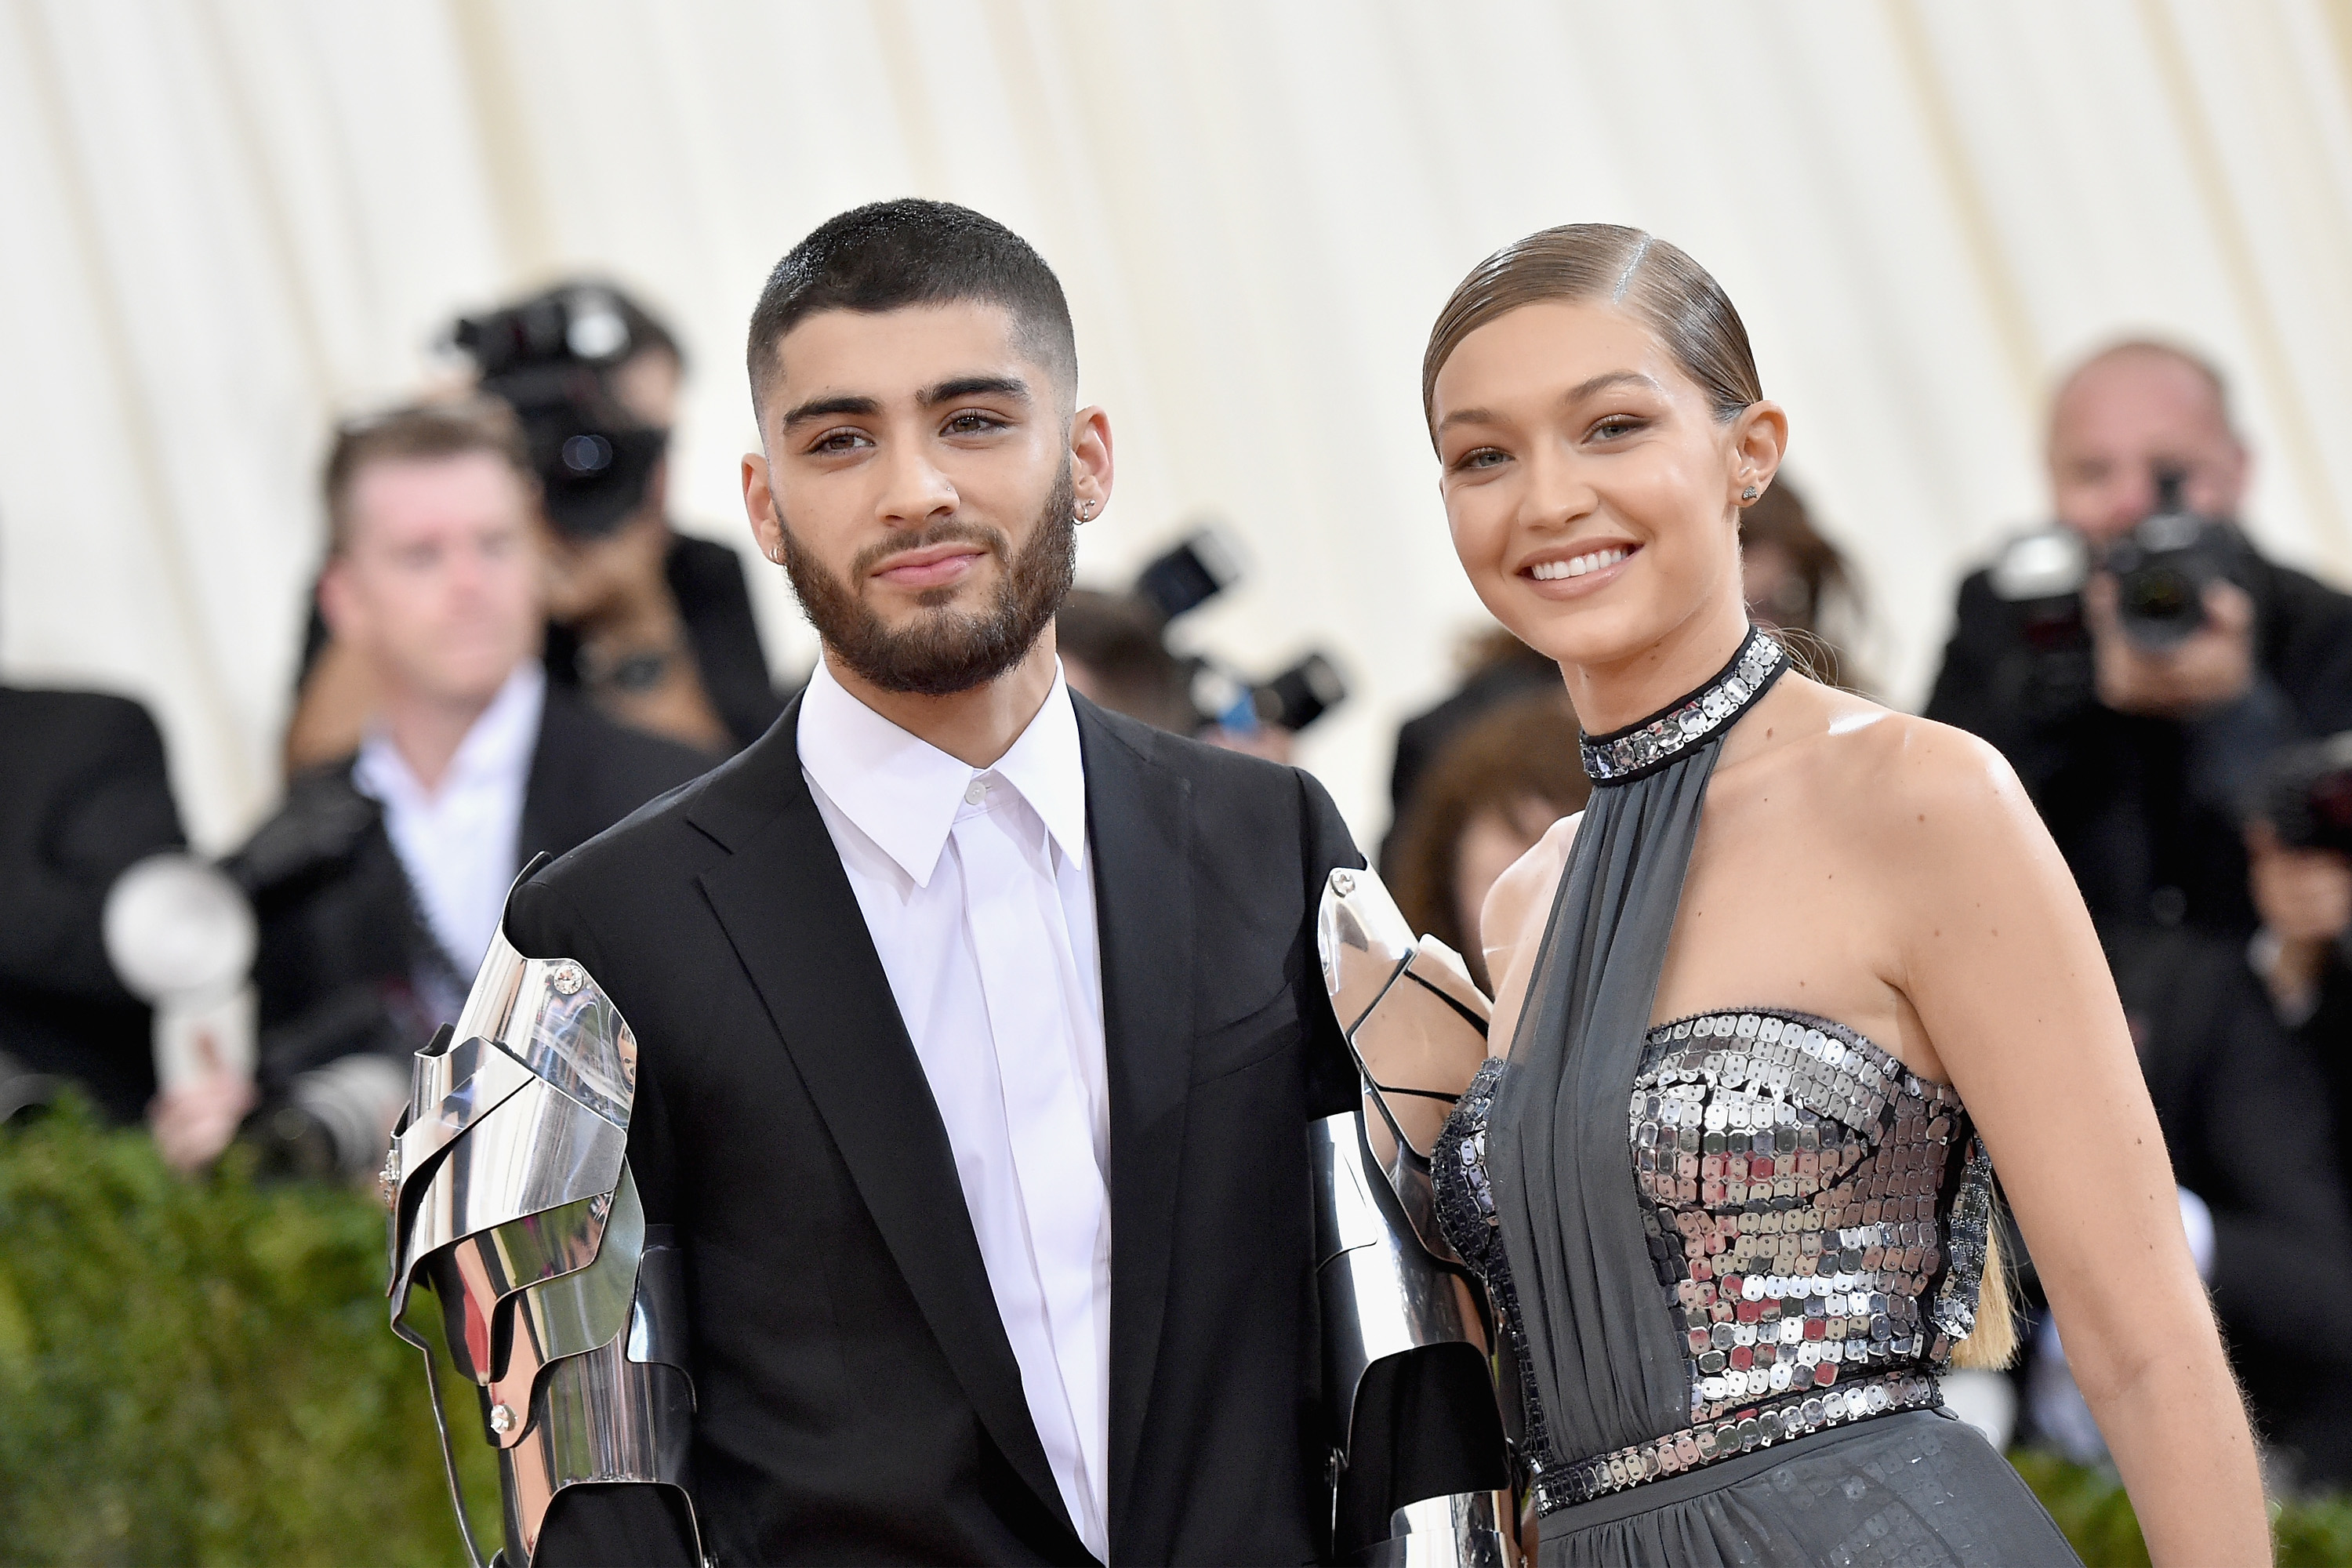 """NEW YORK, NY - MAY 02: Zayn Malik (L) and Gigi Hadid attend the """"Manus x Machina: Fashion In An Age Of Technology"""" Costume Institute Gala at Metropolitan Museum of Art on May 2, 2016 in New York City. (Photo by Mike Coppola/Getty Images for People.com)"""